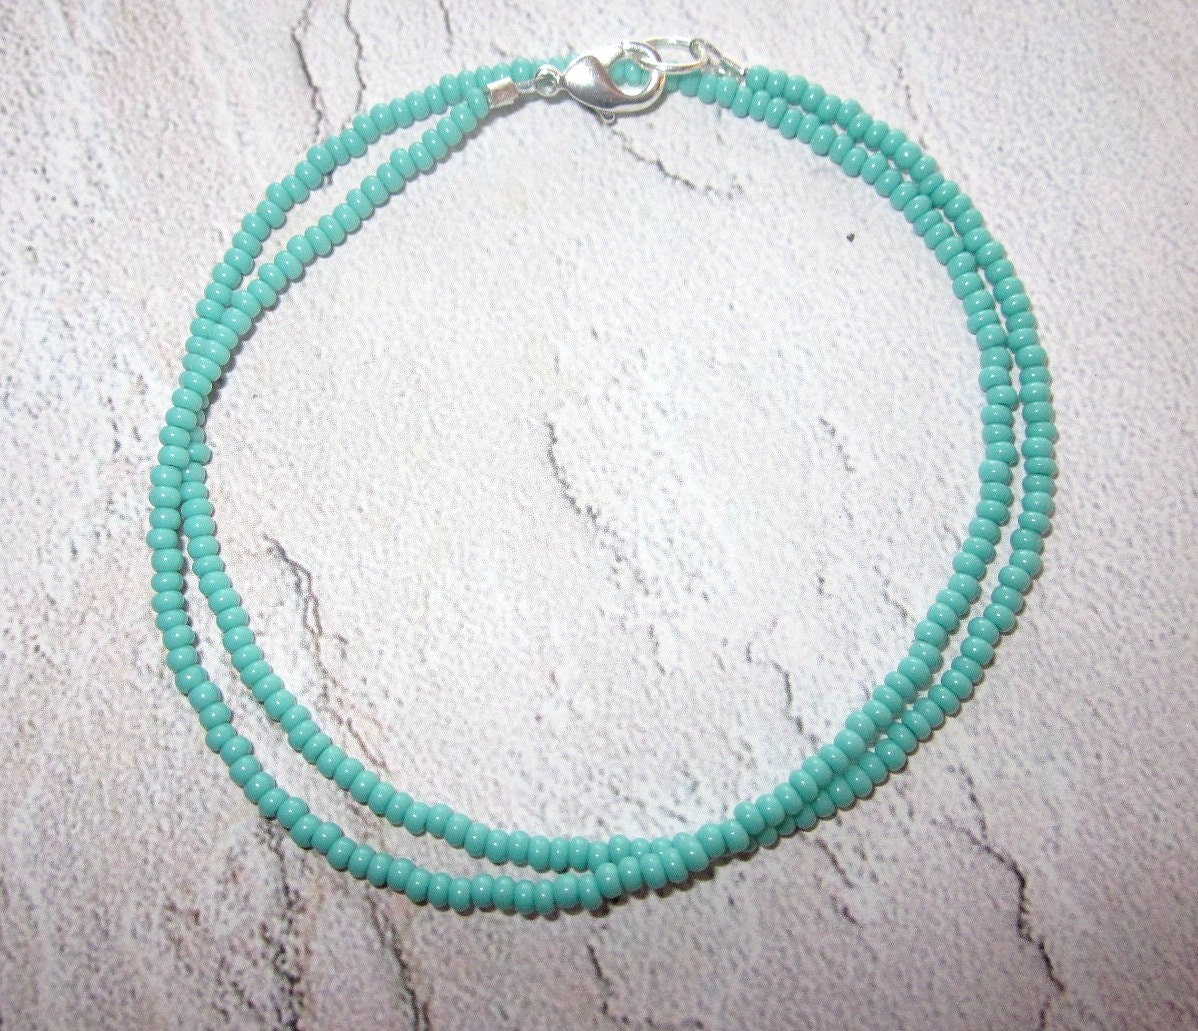 Turquoise Blue Super Tiny Seed Bead Necklace / Choker